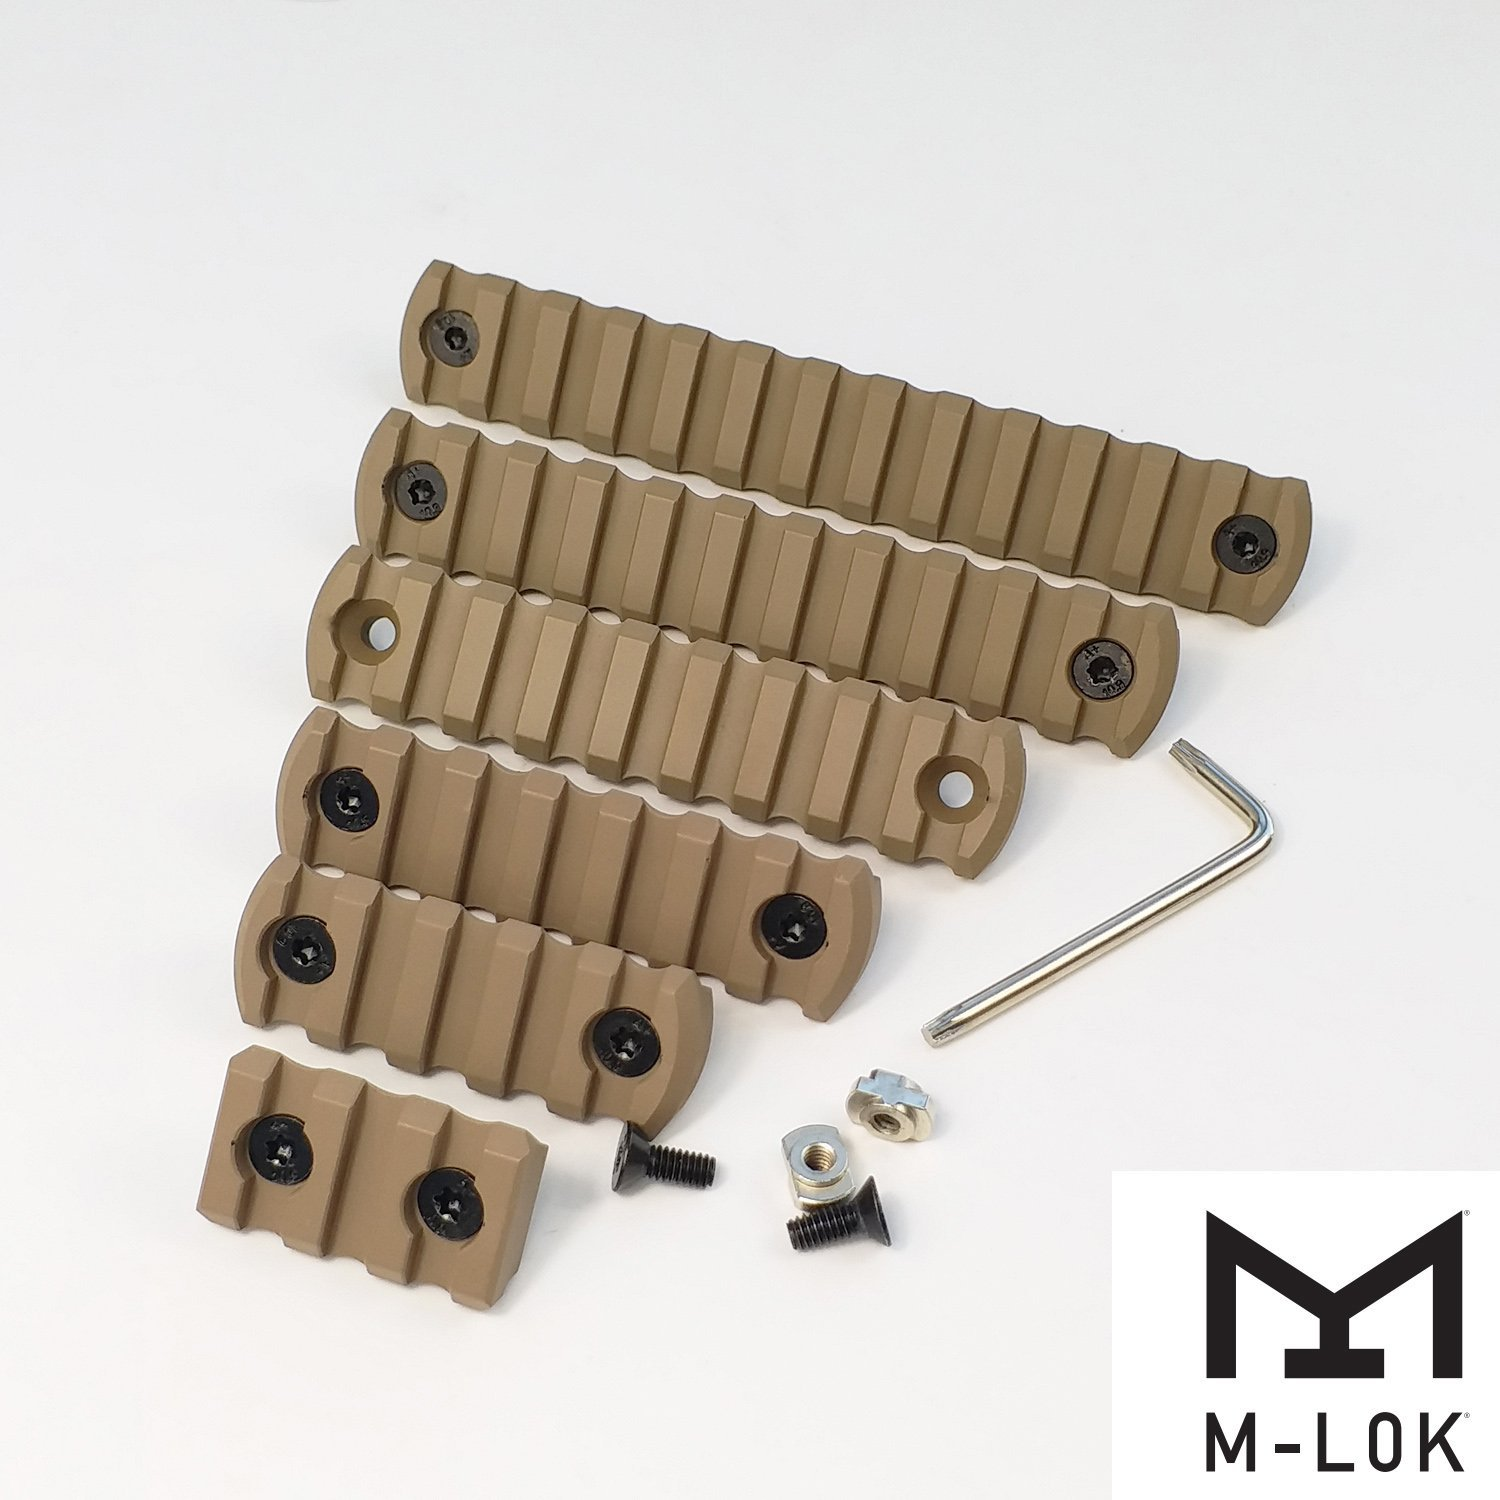 3,5,7,9,11,13 slot Aluminum Picatiny Rail Section M-Lok Type Tan color 6pcs pack by Unknown